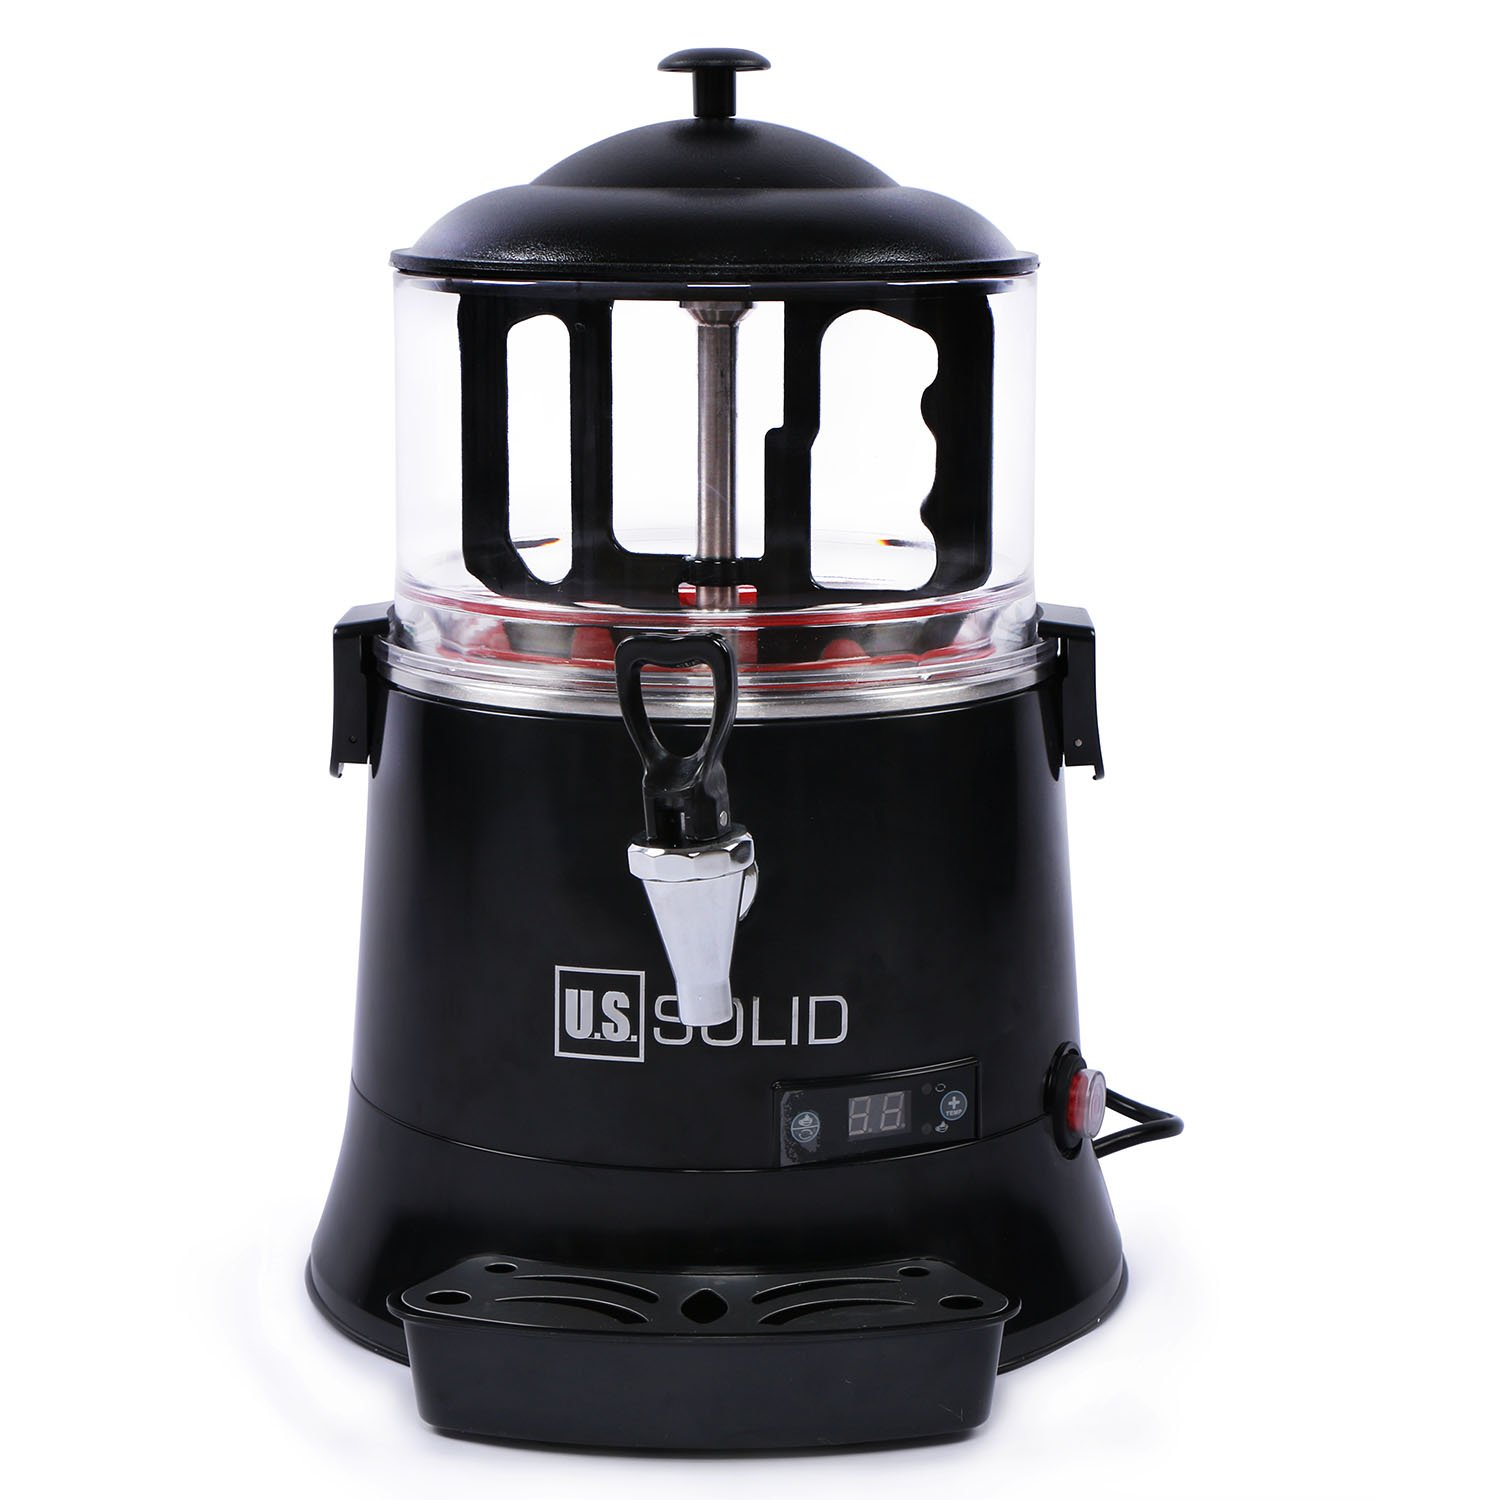 Hot Chocolate Maker- Commercial Hot Beverage Dispenser Machine, Temperature Control from 30°C to 90°C, Easy To Clean 120V Hot Chocolate Maker with Dispensing Spigot, 5 Liter, a U.S. Solid Product